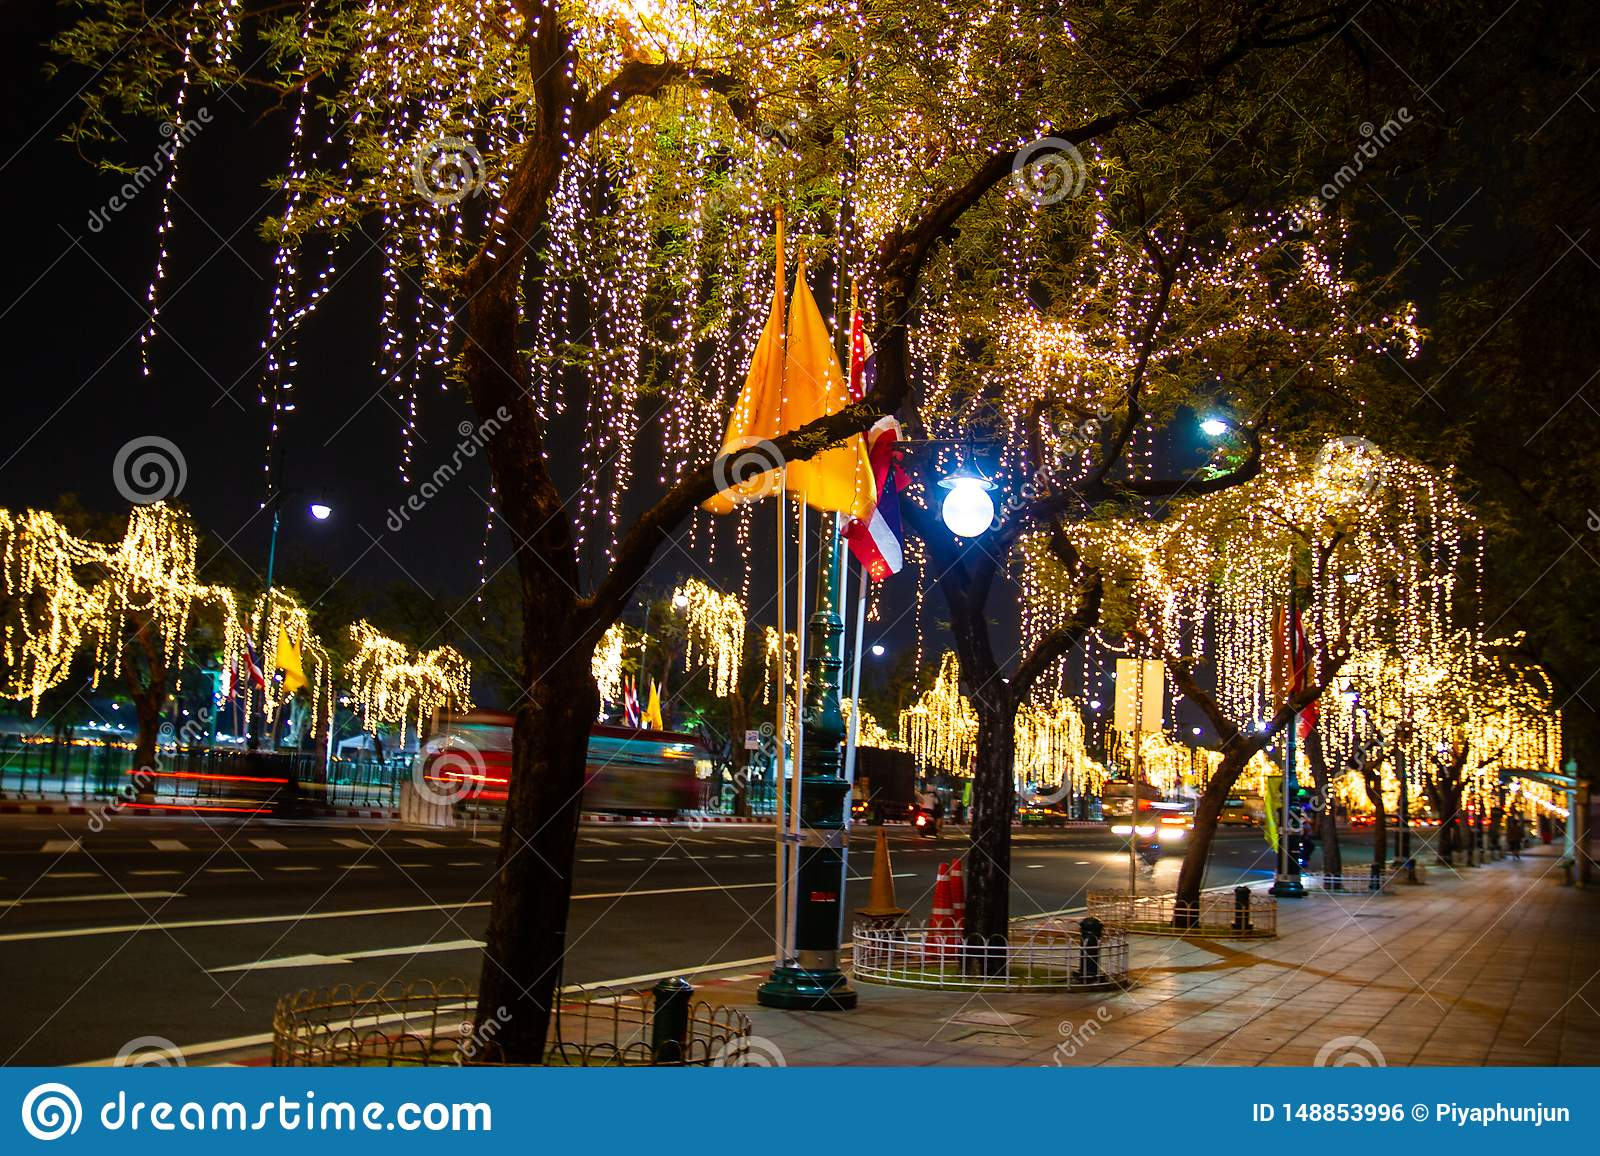 Decorative Outdoor String Lights Hanging On Tree In The Garden At Night Time Stock Photo Image Of Celebration Bright 148853996